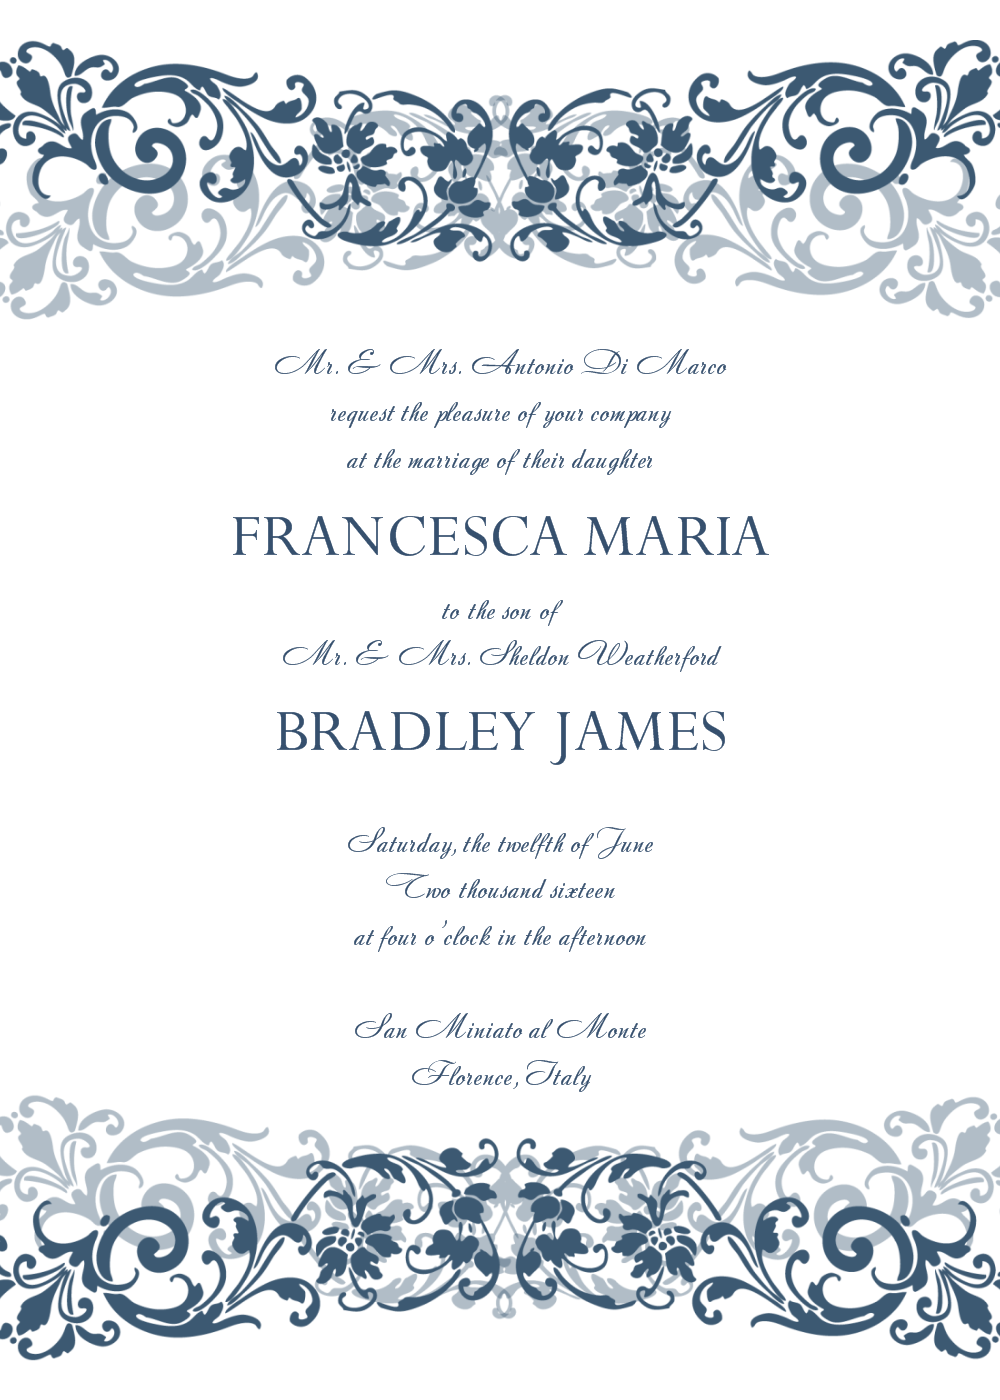 30 Free Wedding Invitations Templates